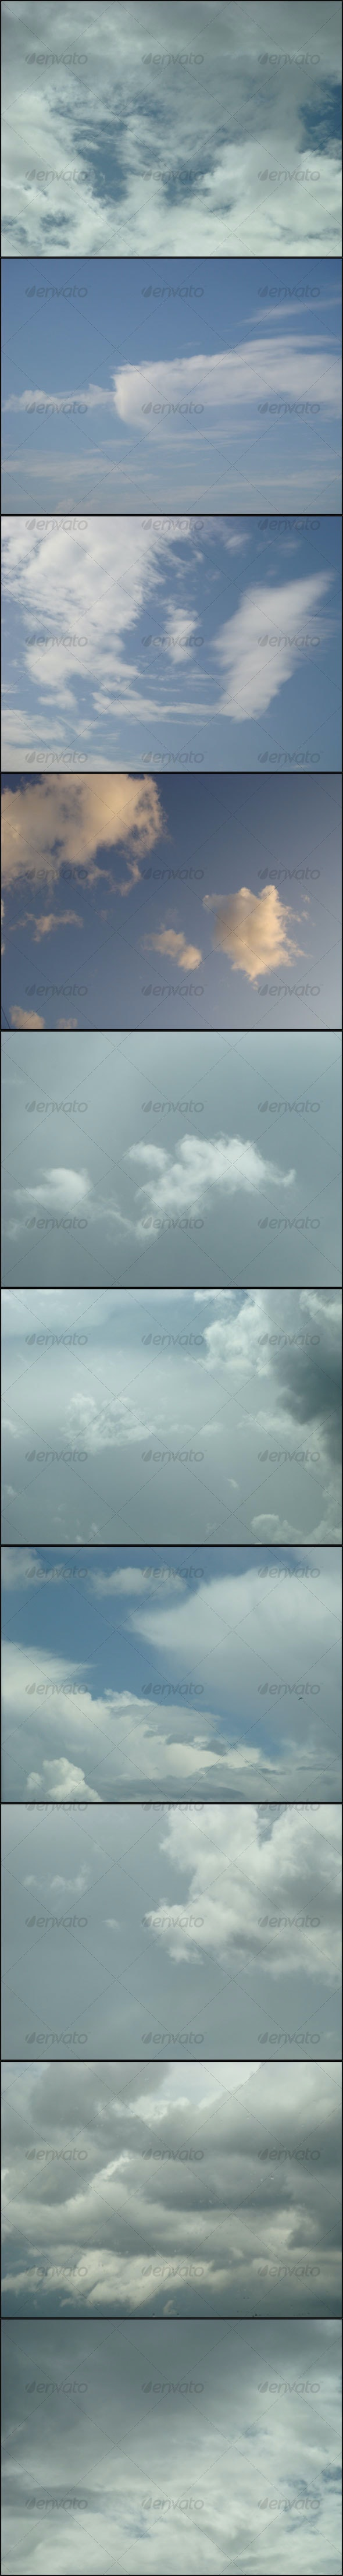 Clouds 1 - Miscellaneous Textures